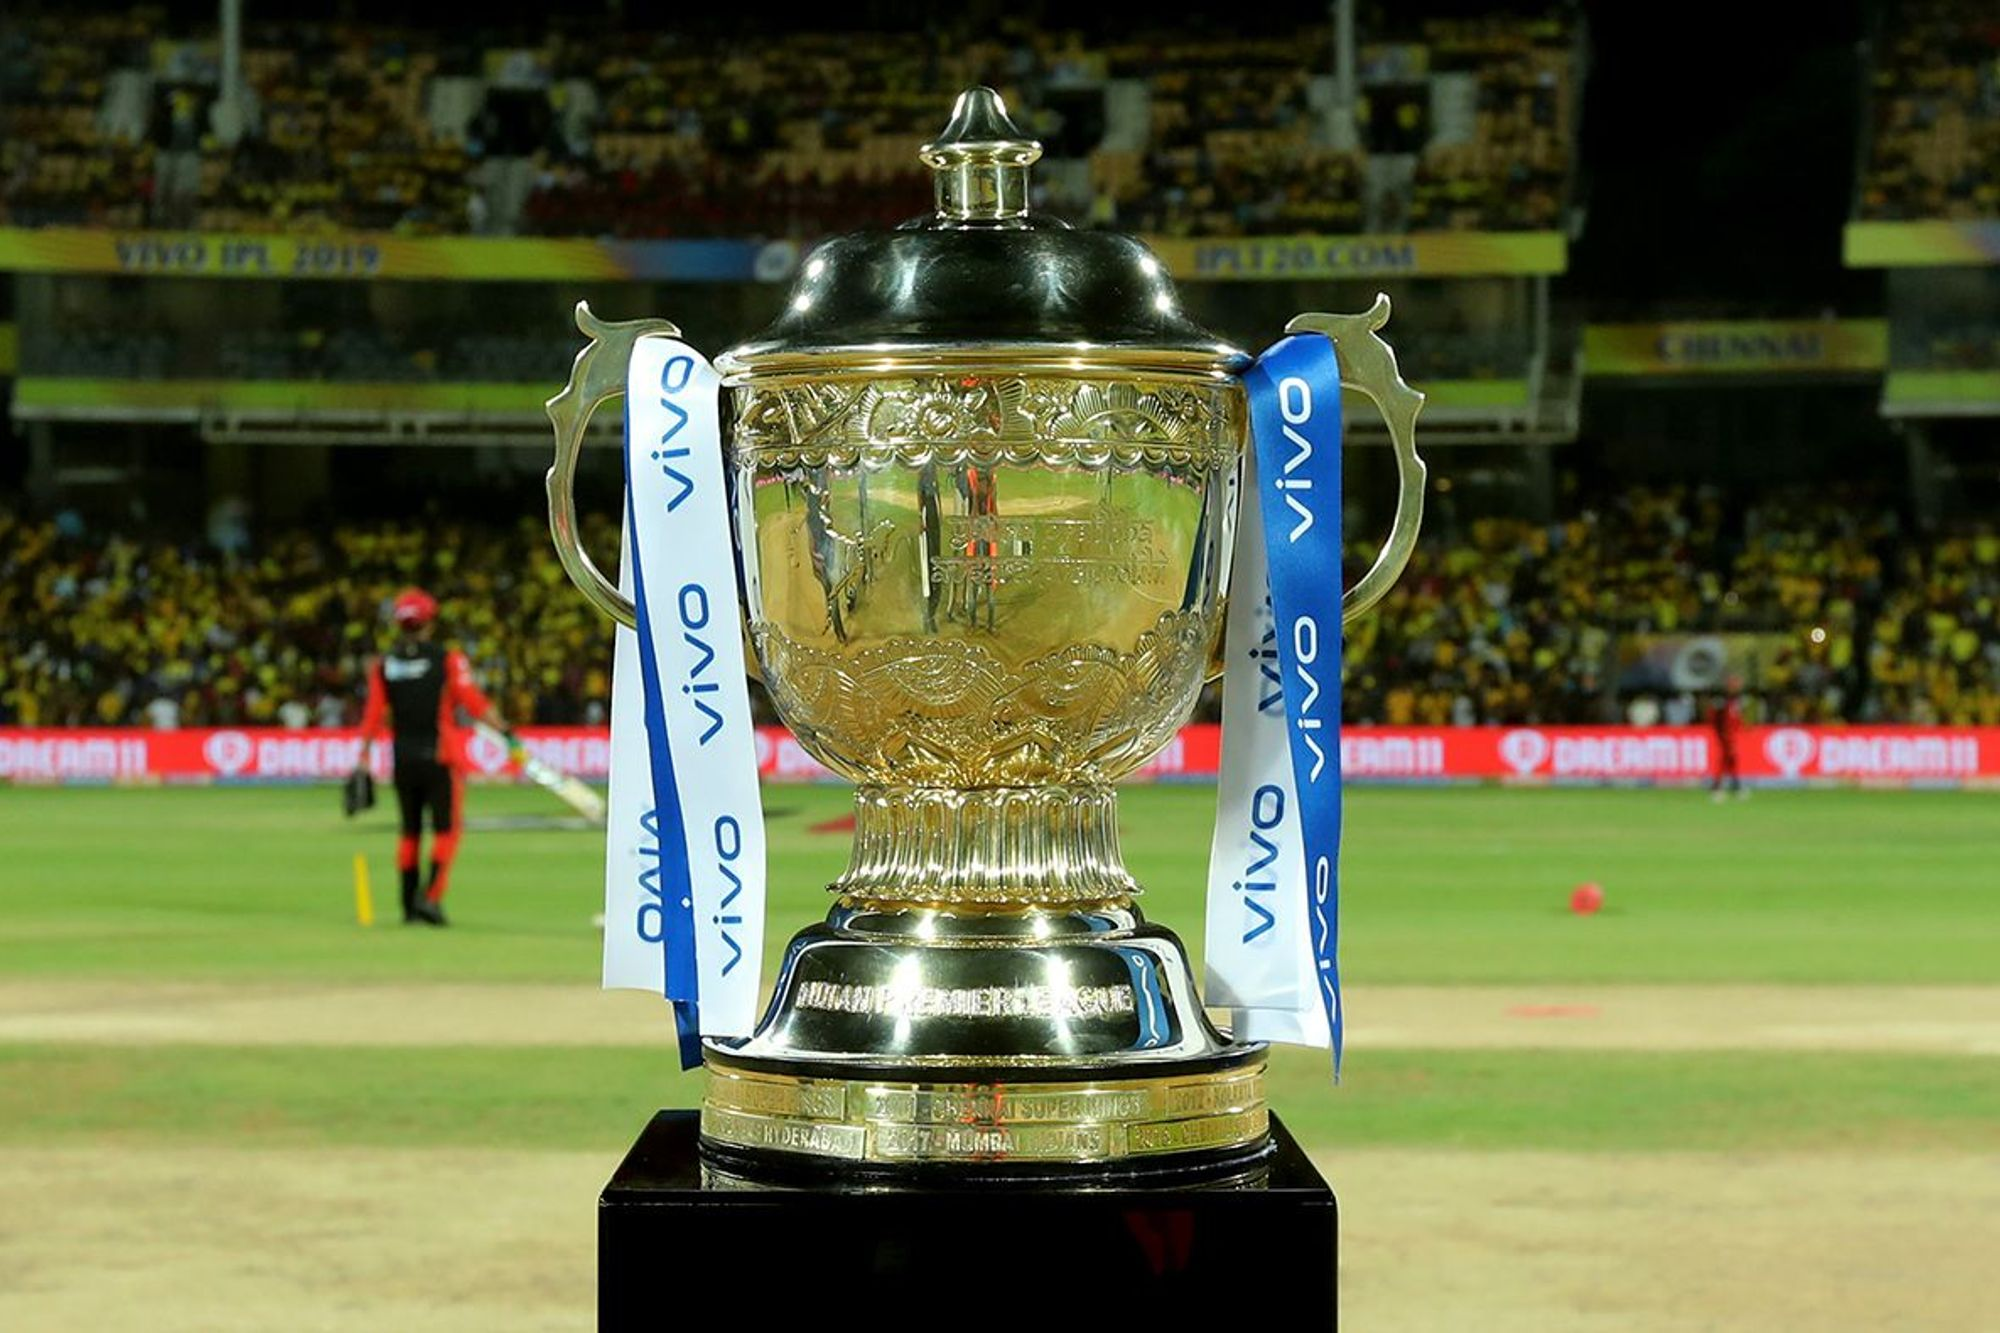 ipl in uae from sept 19